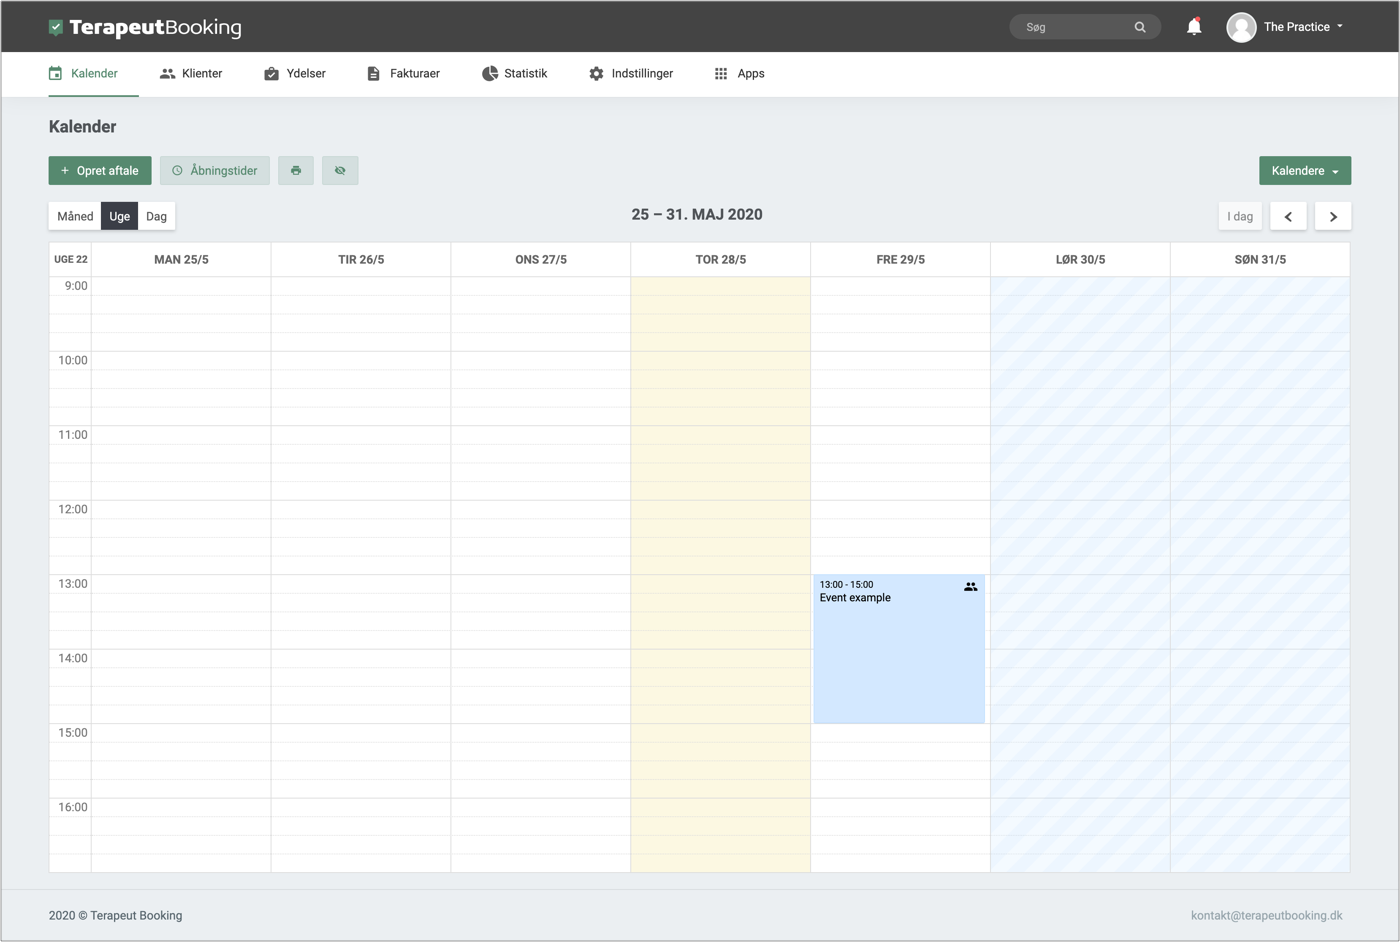 Kalender funktionen i Terapeut Booking